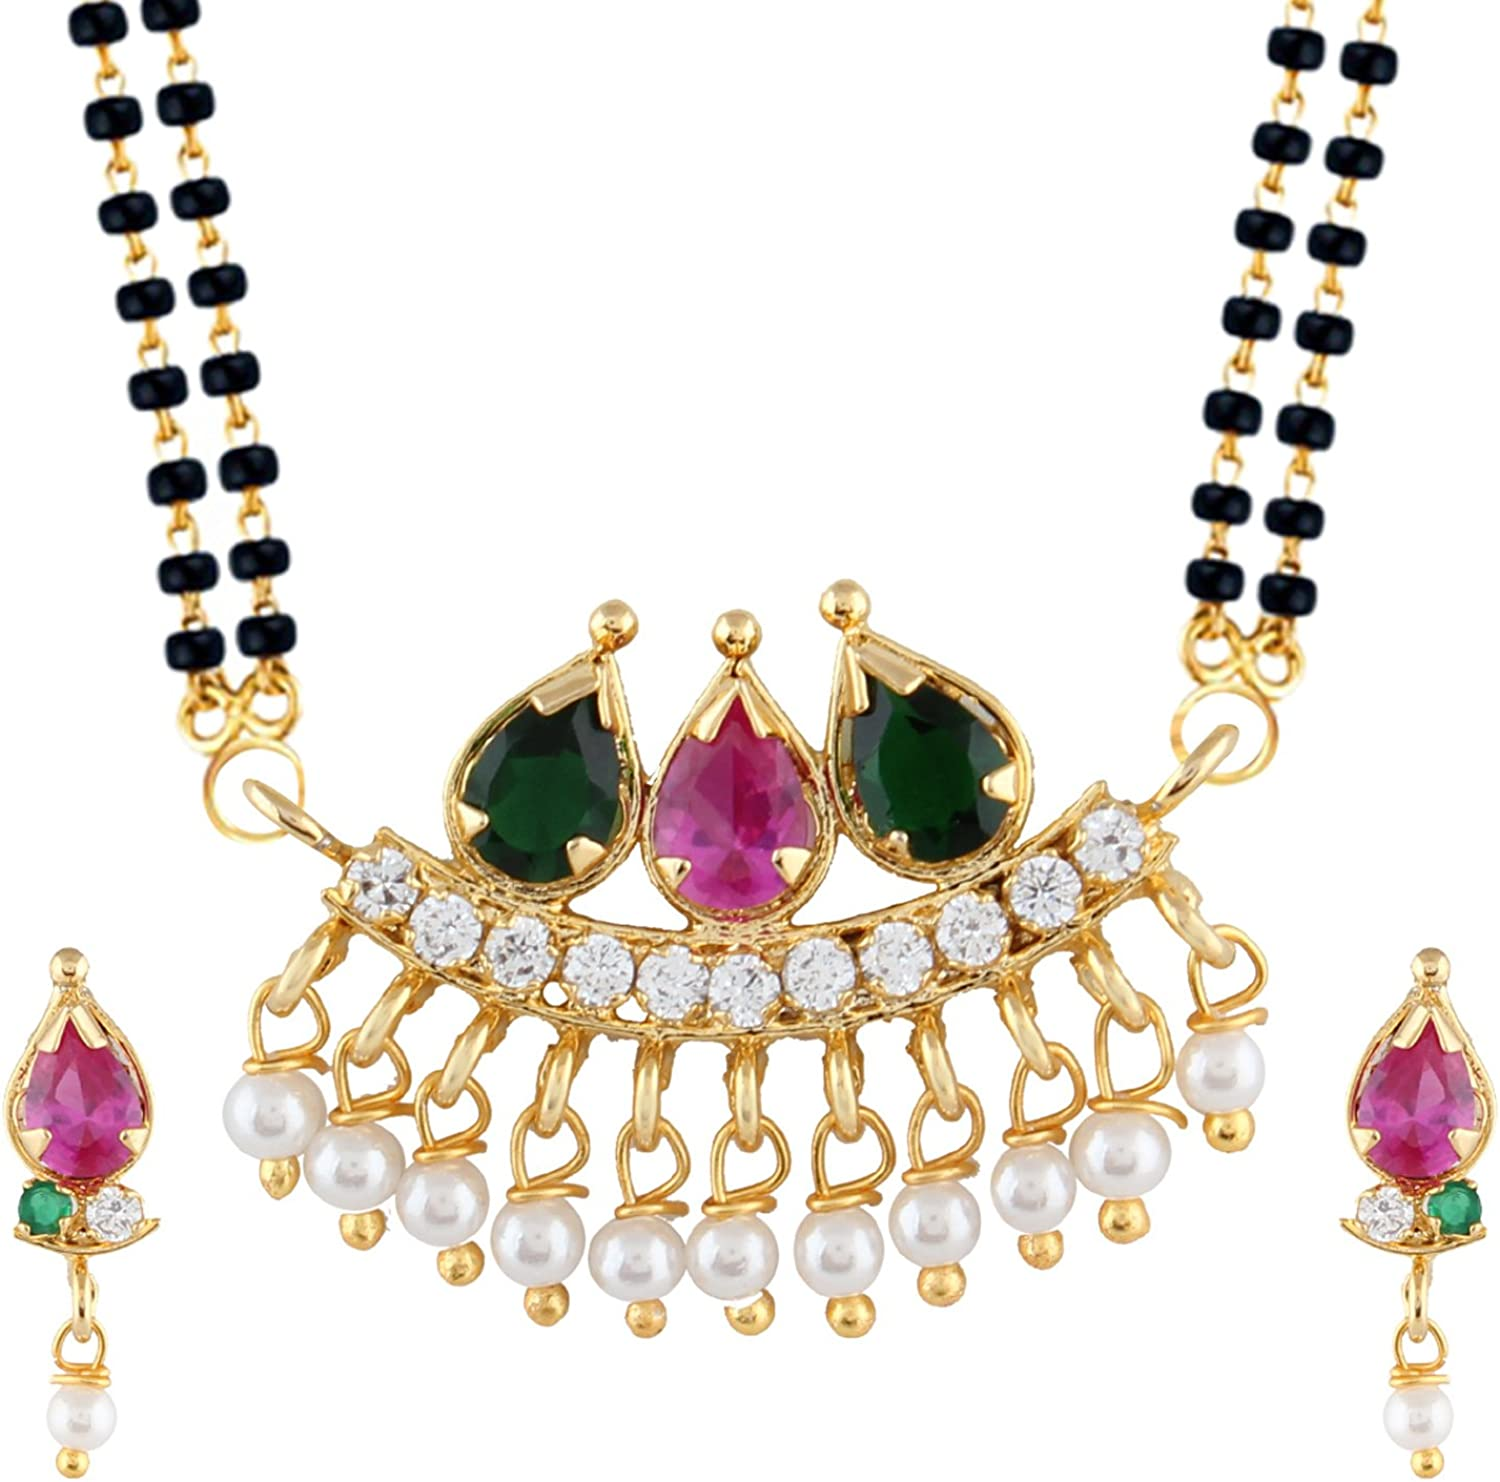 Efulgenz Indian Bollywood Traditional Gold Plated Ruby Emerald//Color CZ Stone Mangalsutra Pendant Necklace Jewelry with Chain for Women